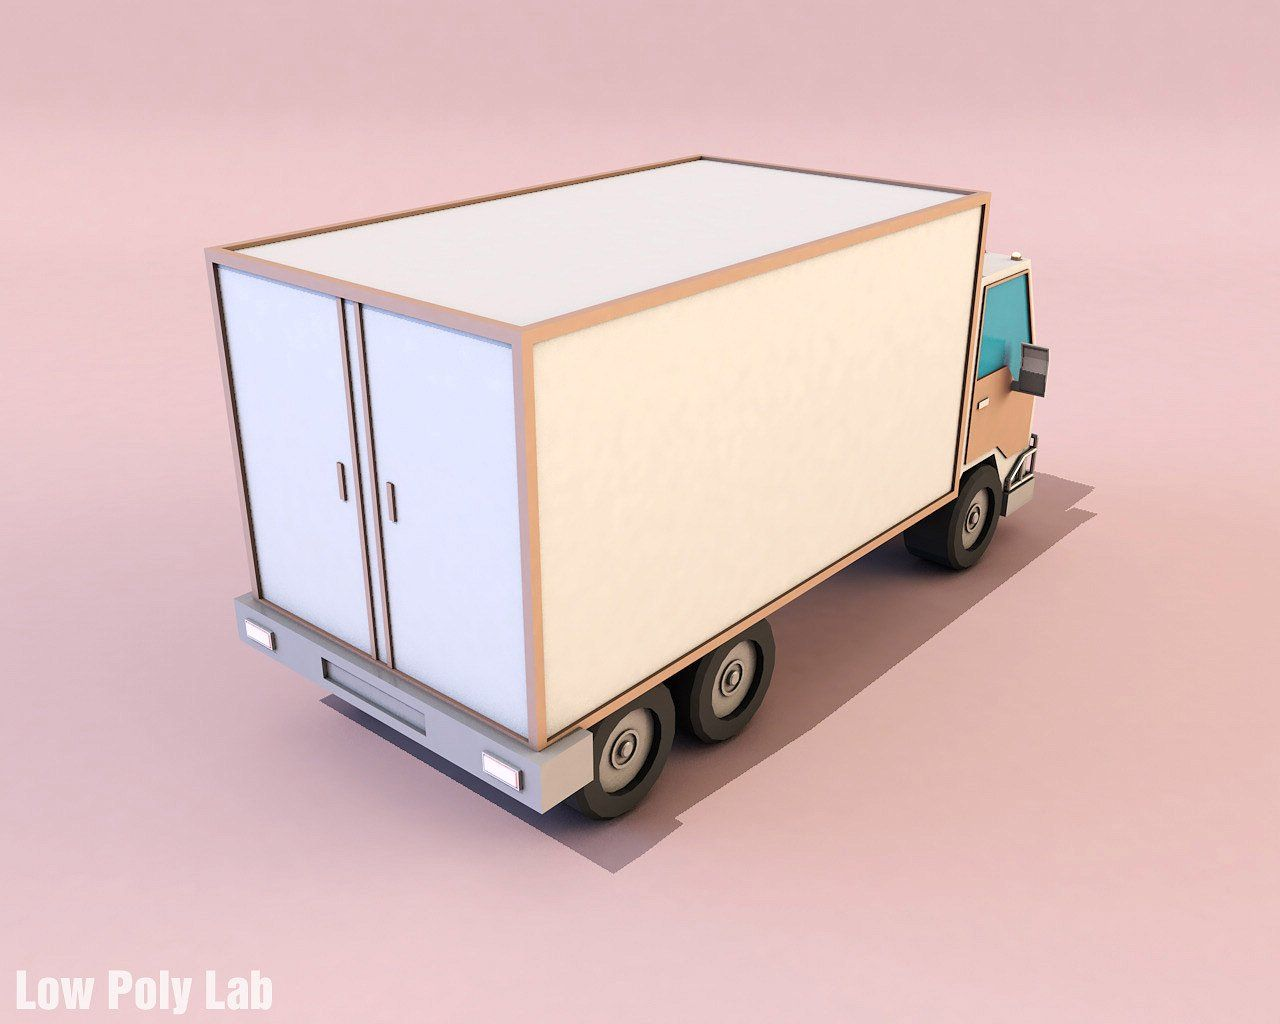 Cartoon Truck Low Poly 3d Model With Images Low Poly 3d Models